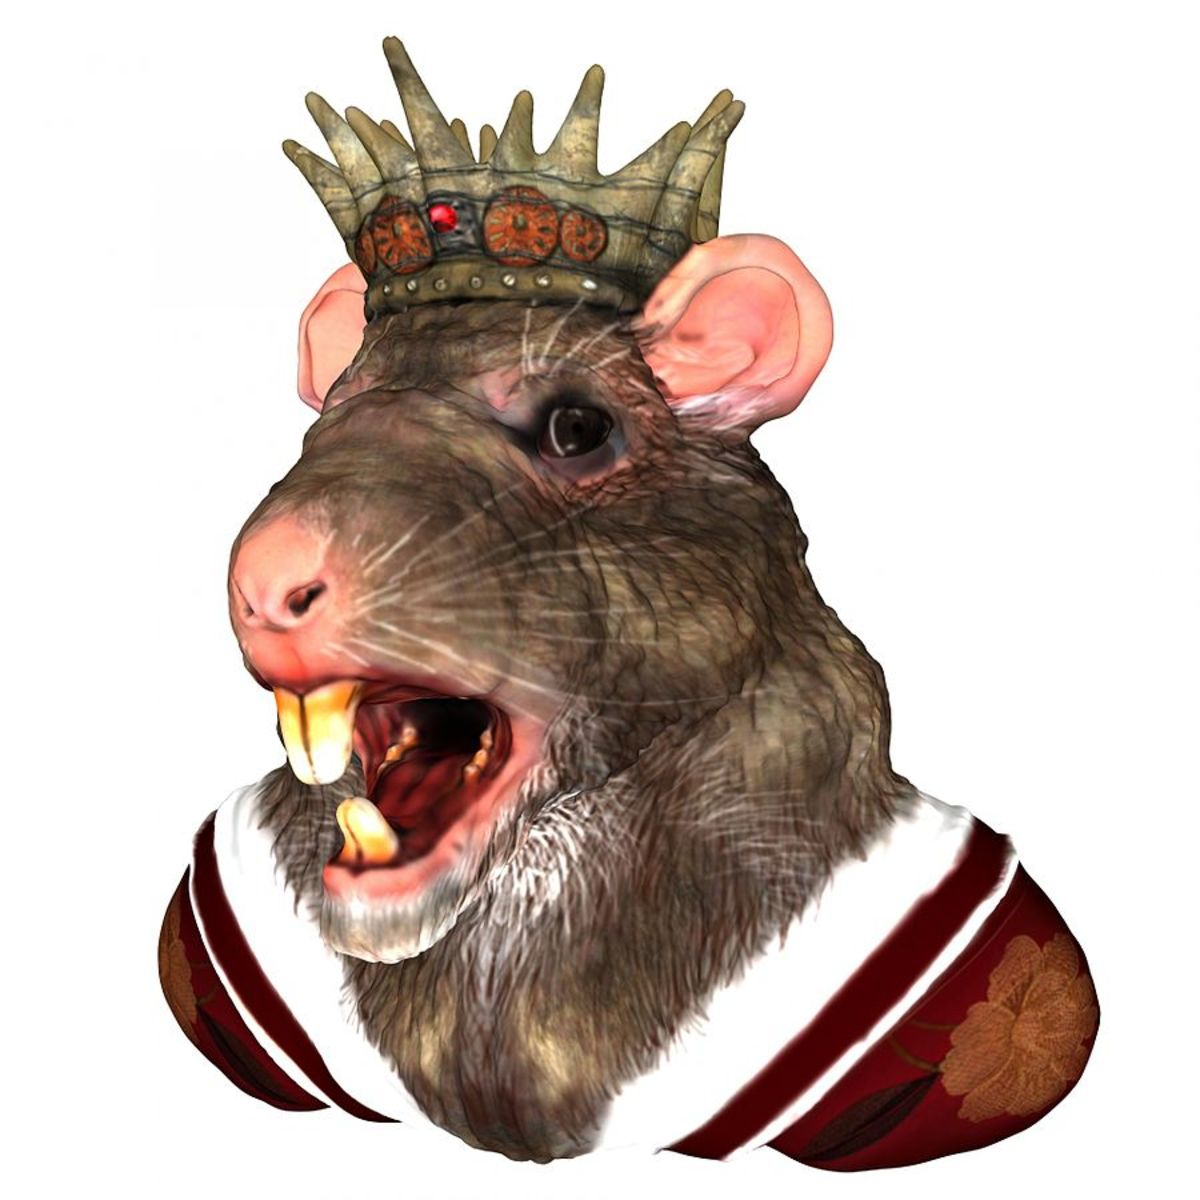 No. Not that kind of rat king.